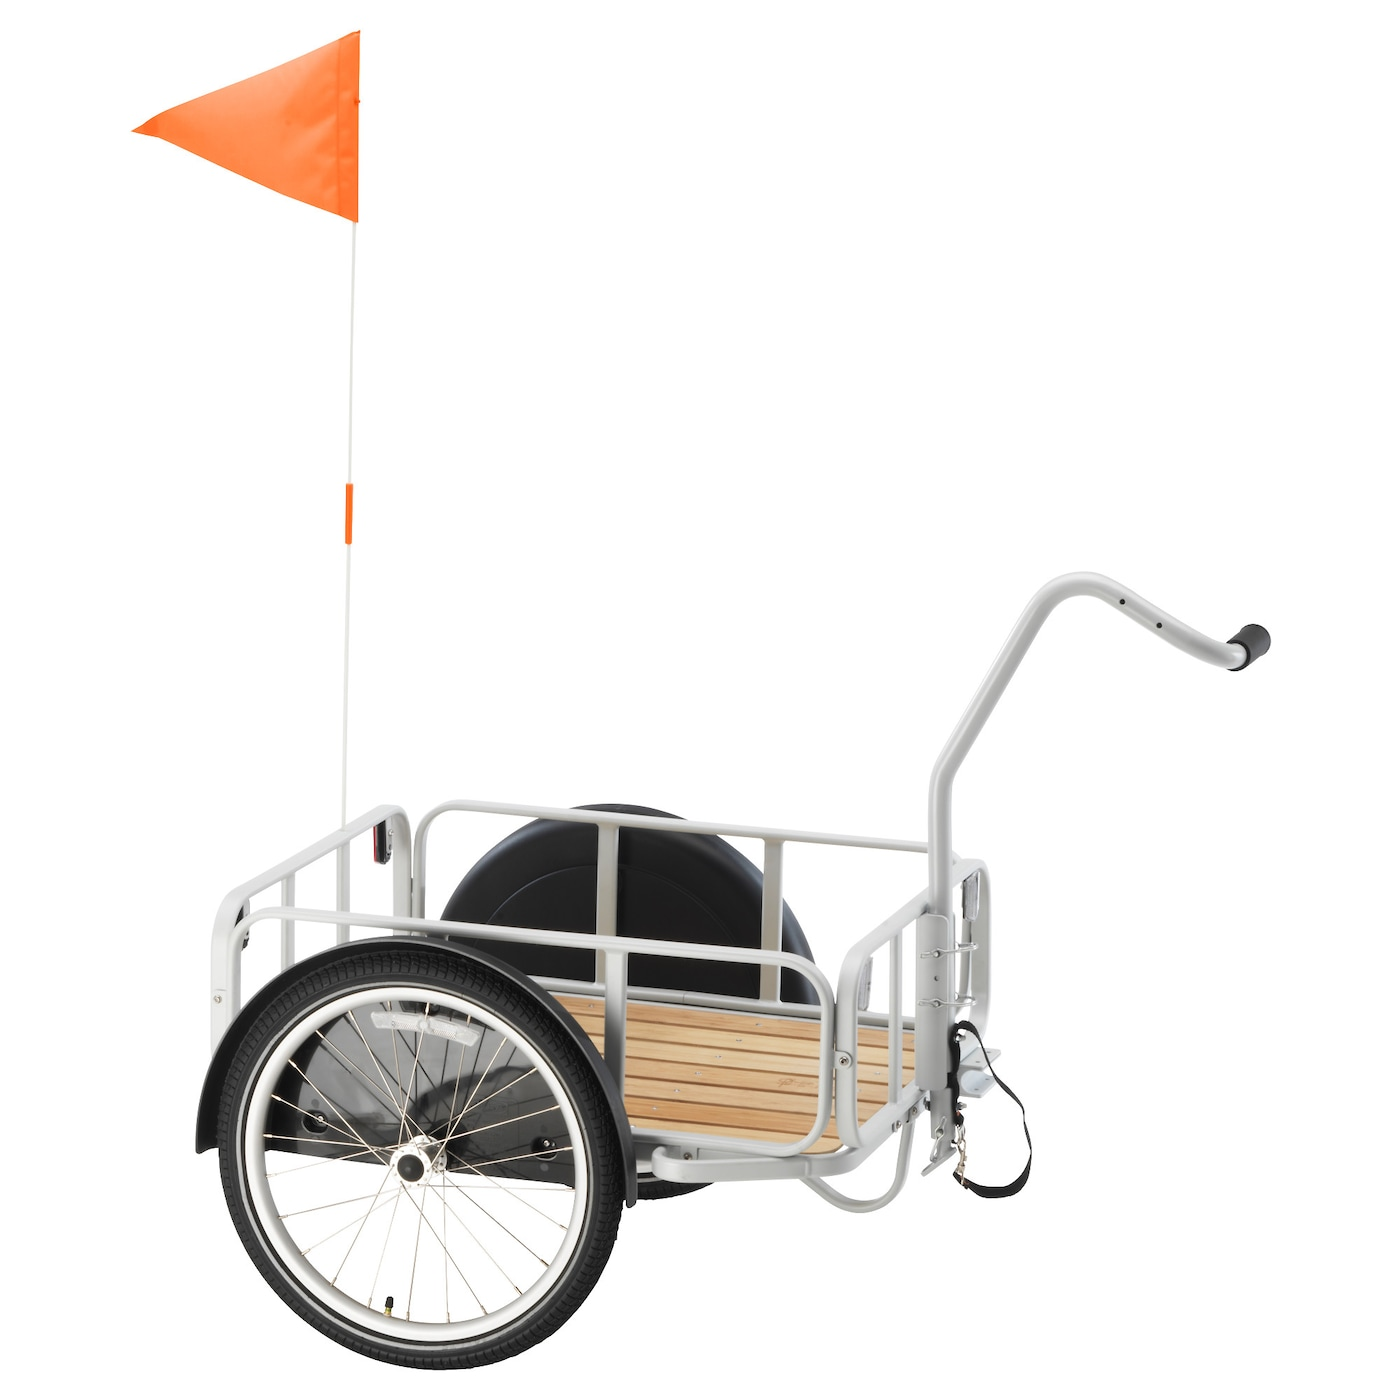 IKEA SLADDA bicycle trailer Can easily be converted into a hand-towed trailer.